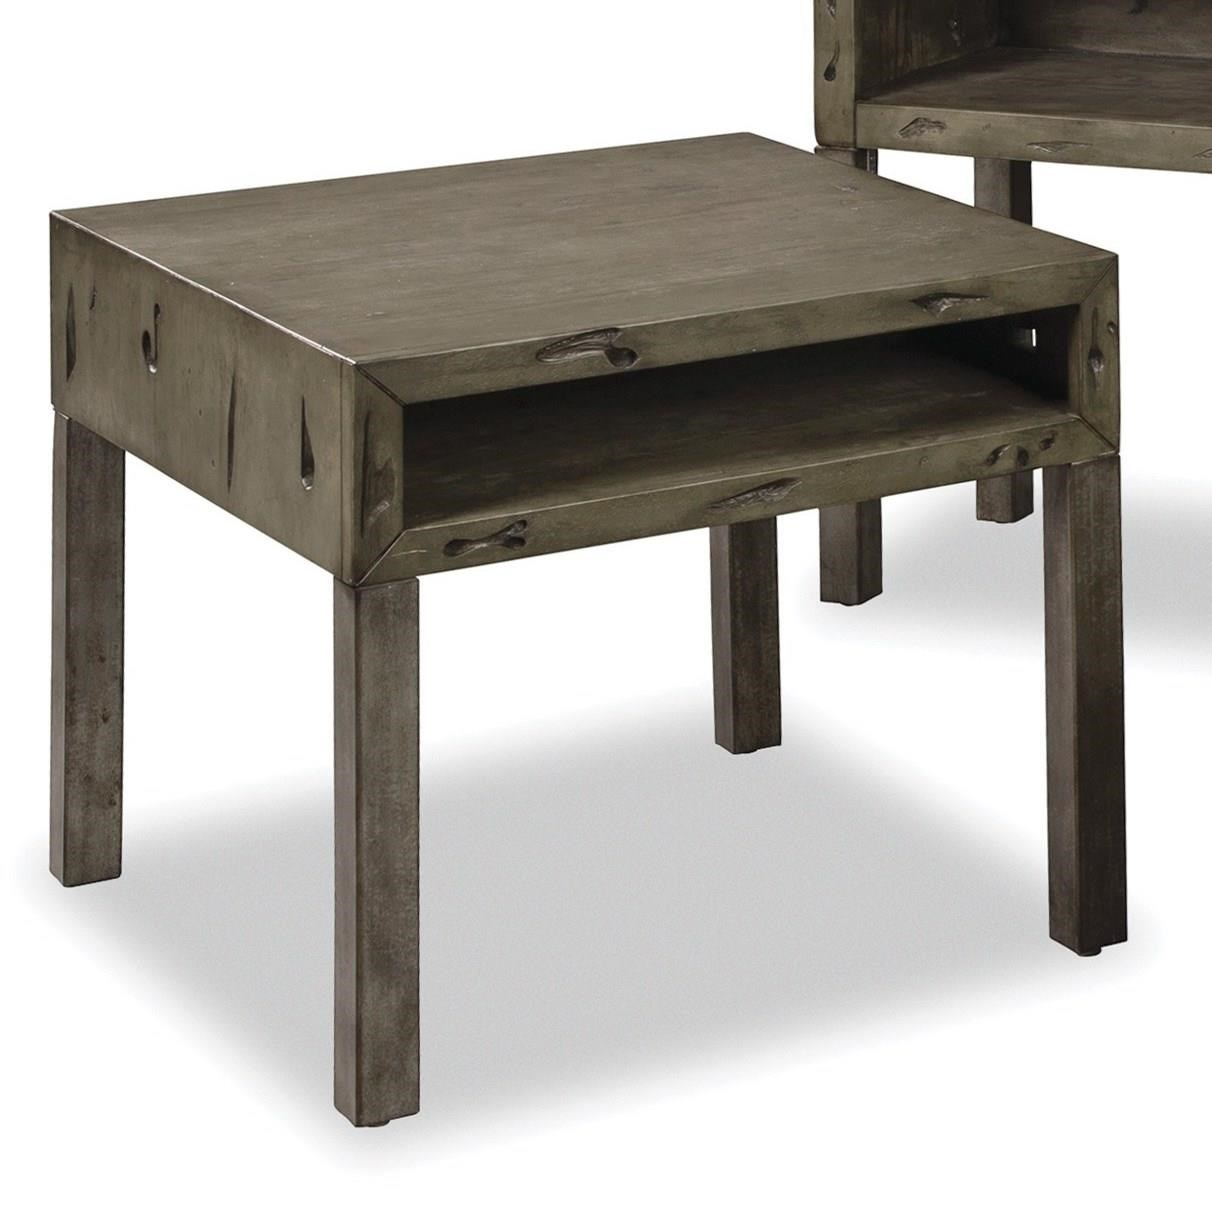 991 Tables End Table by Craftmaster at Esprit Decor Home Furnishings